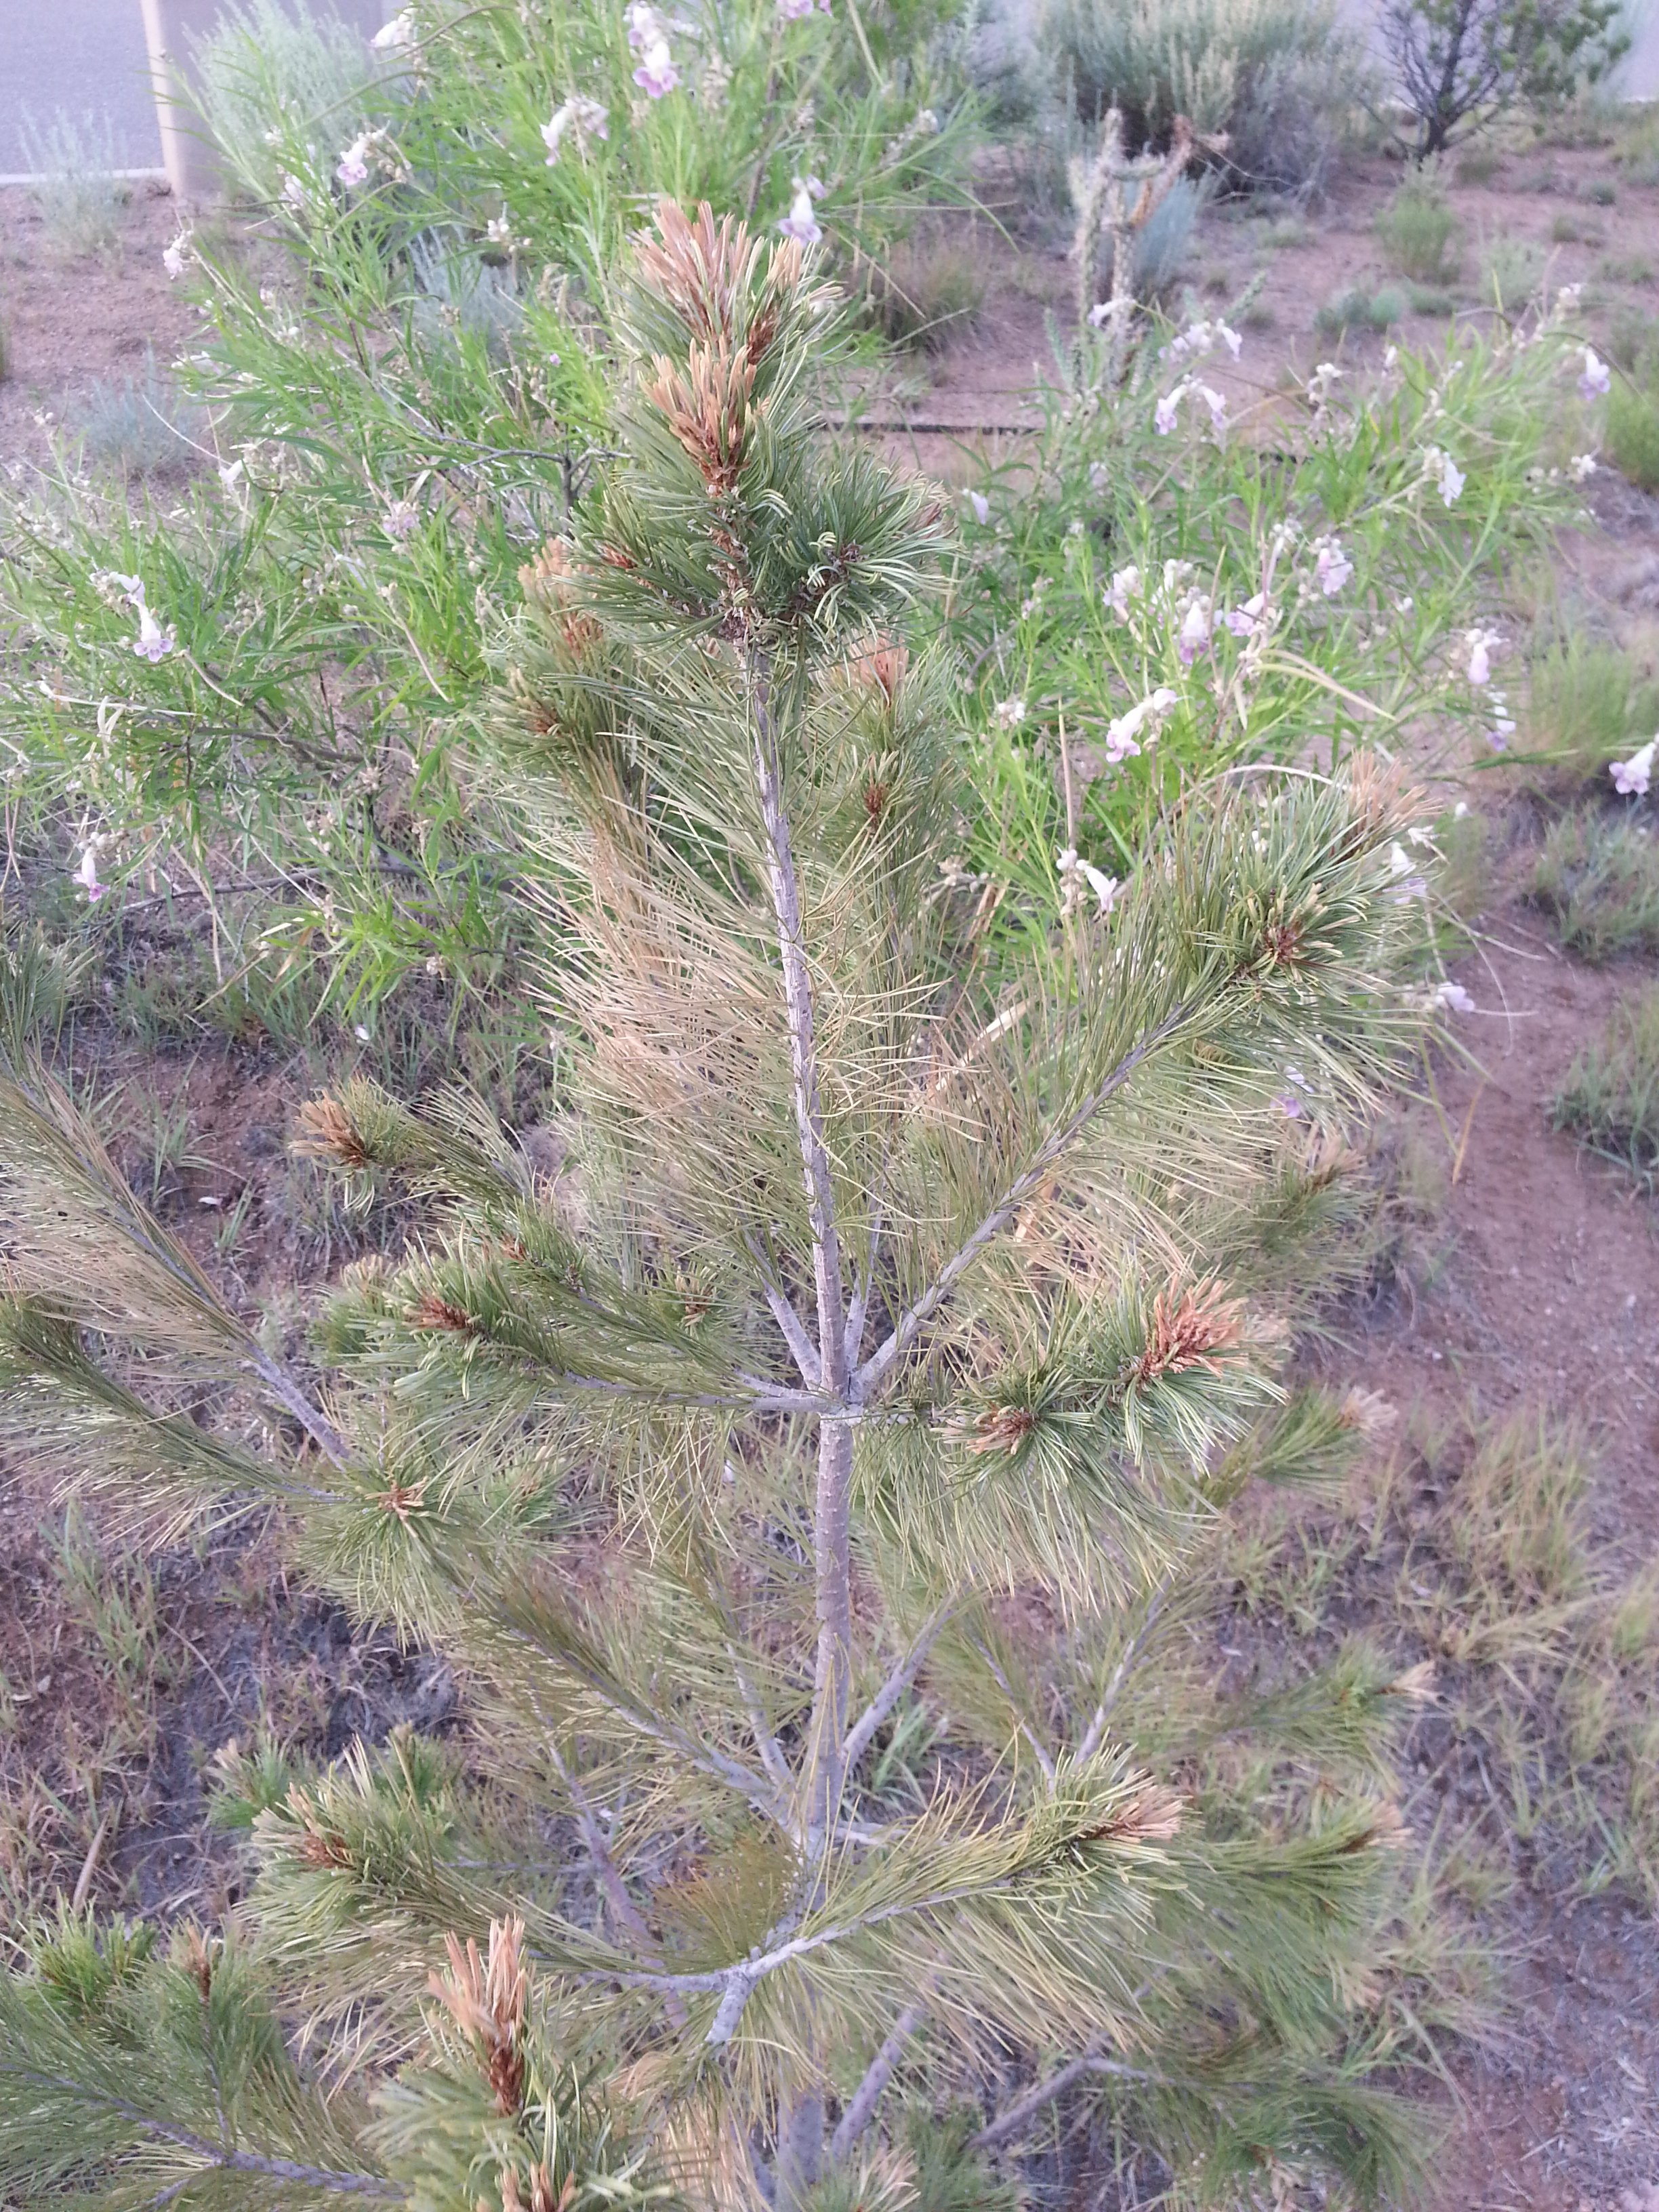 Diseased White Pine